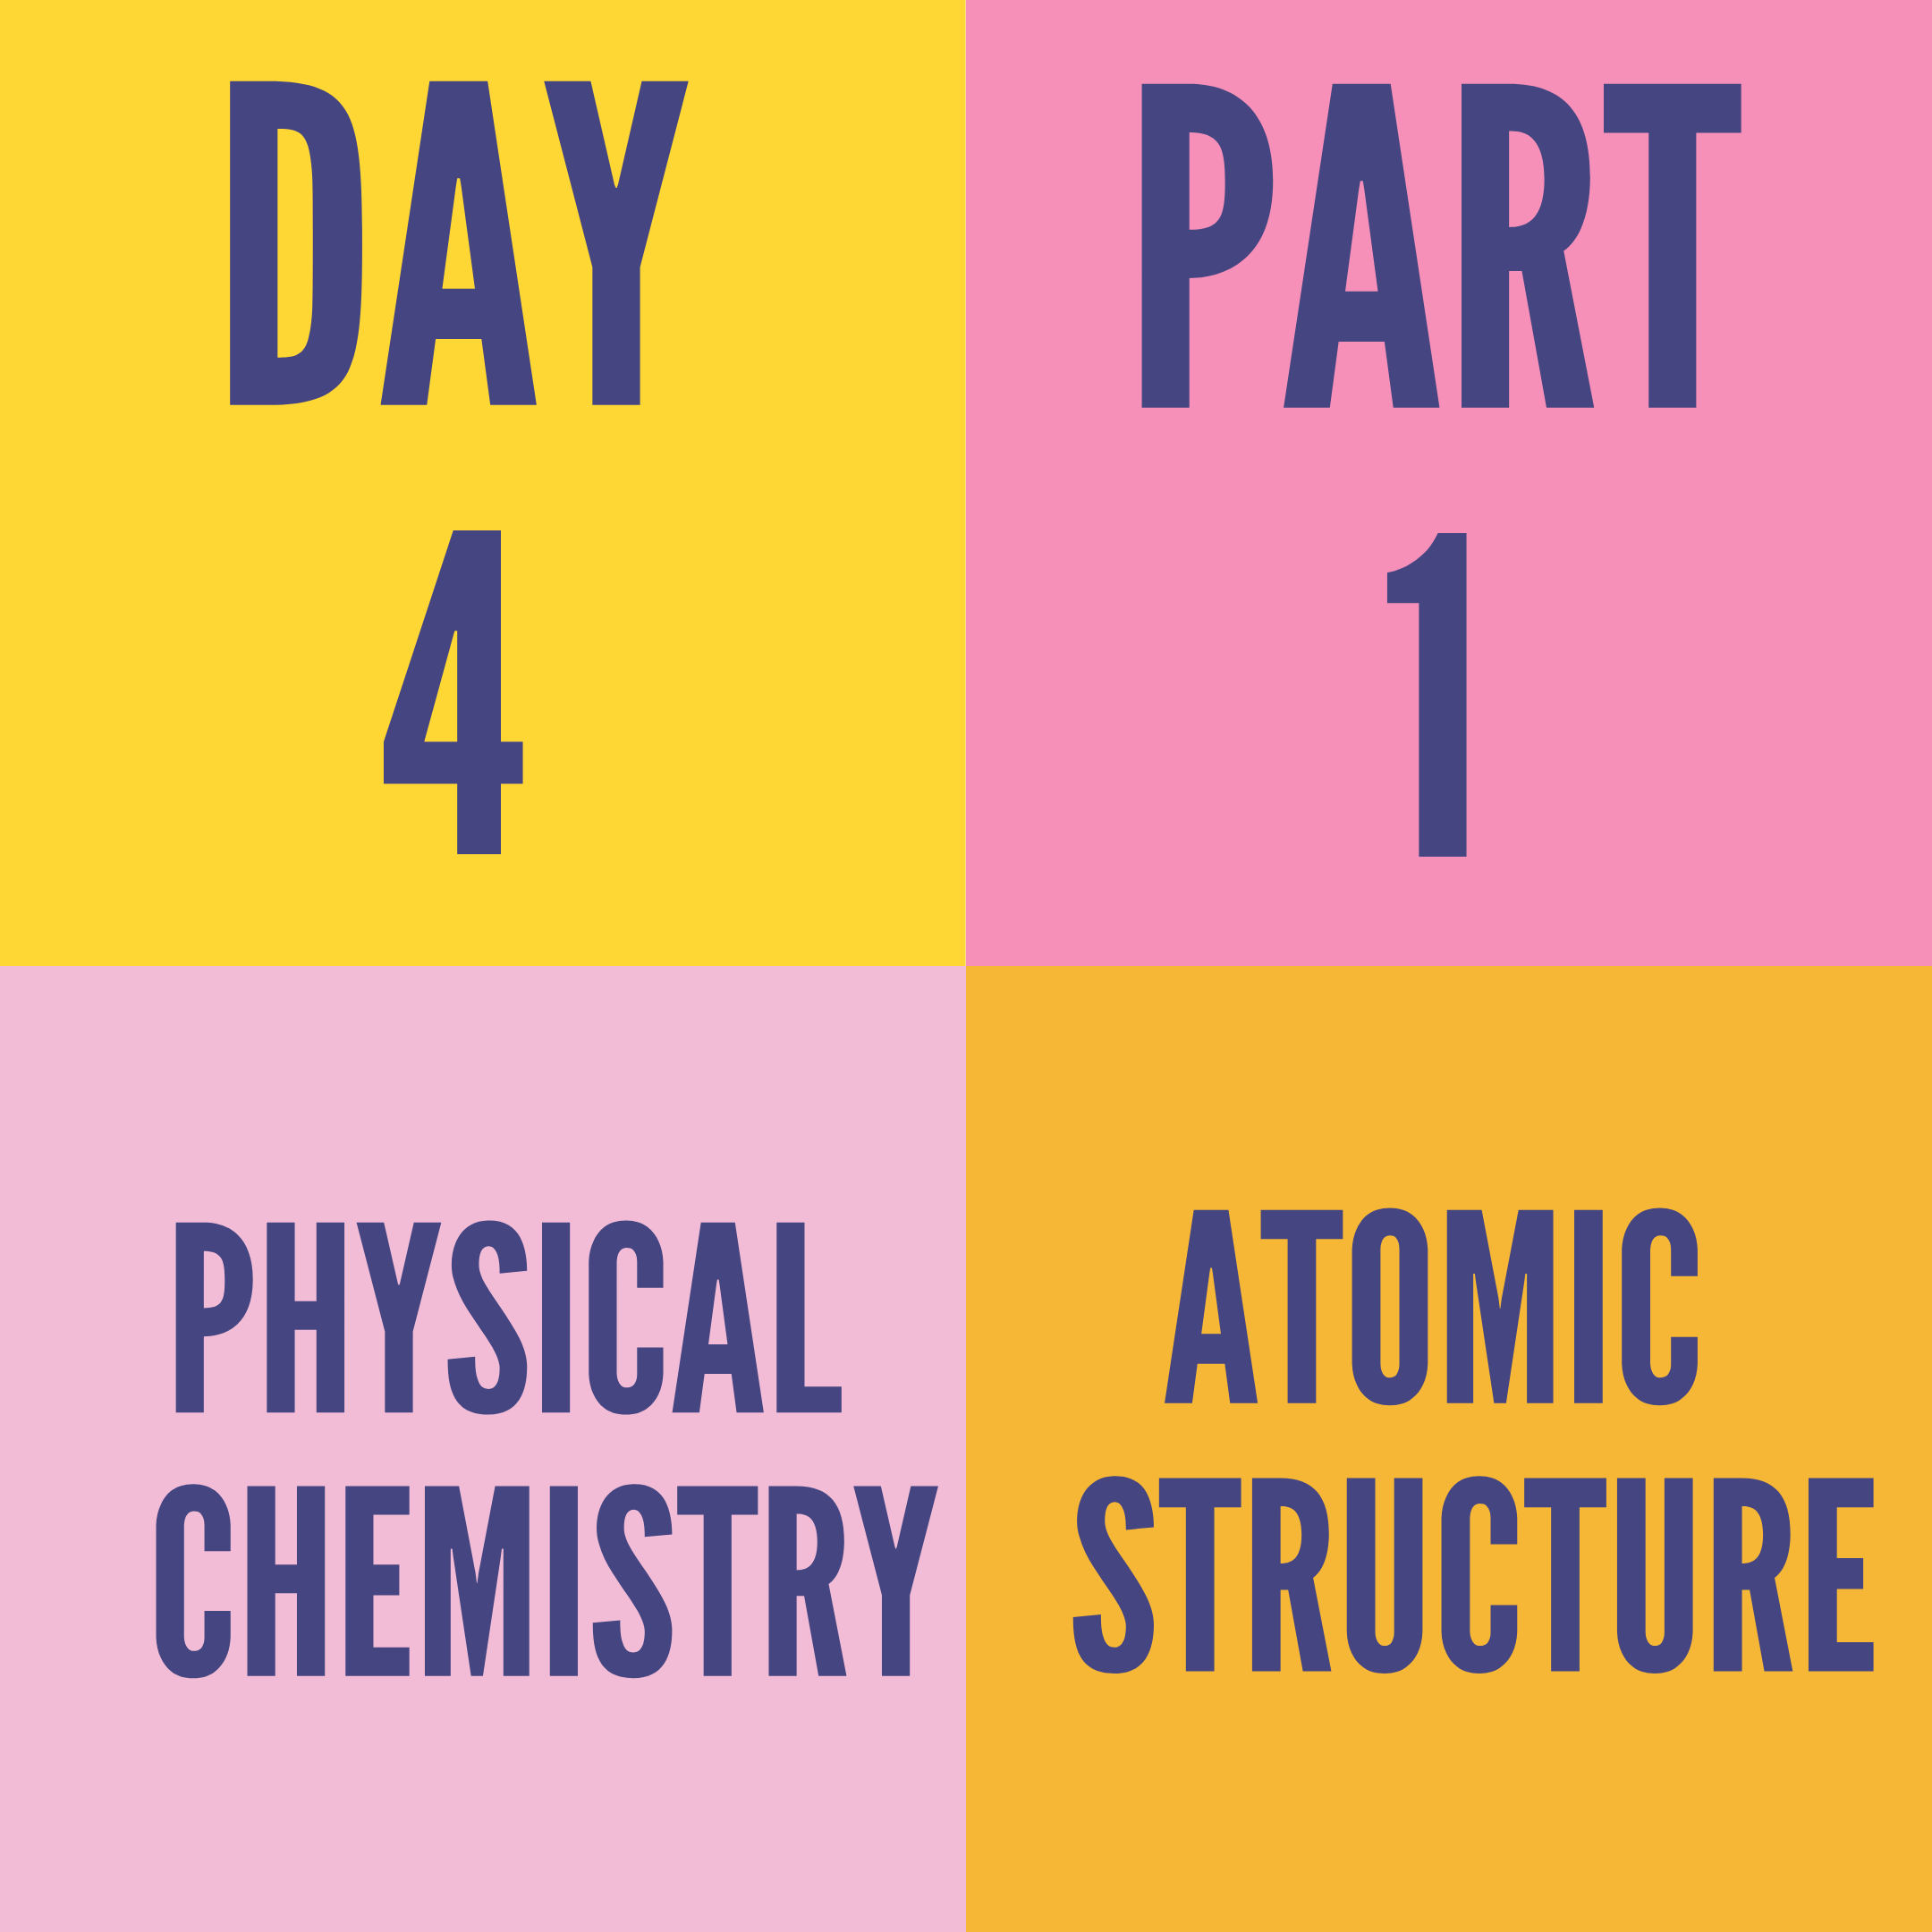 DAY-4 PART-1 ATOMIC STRUCTURE